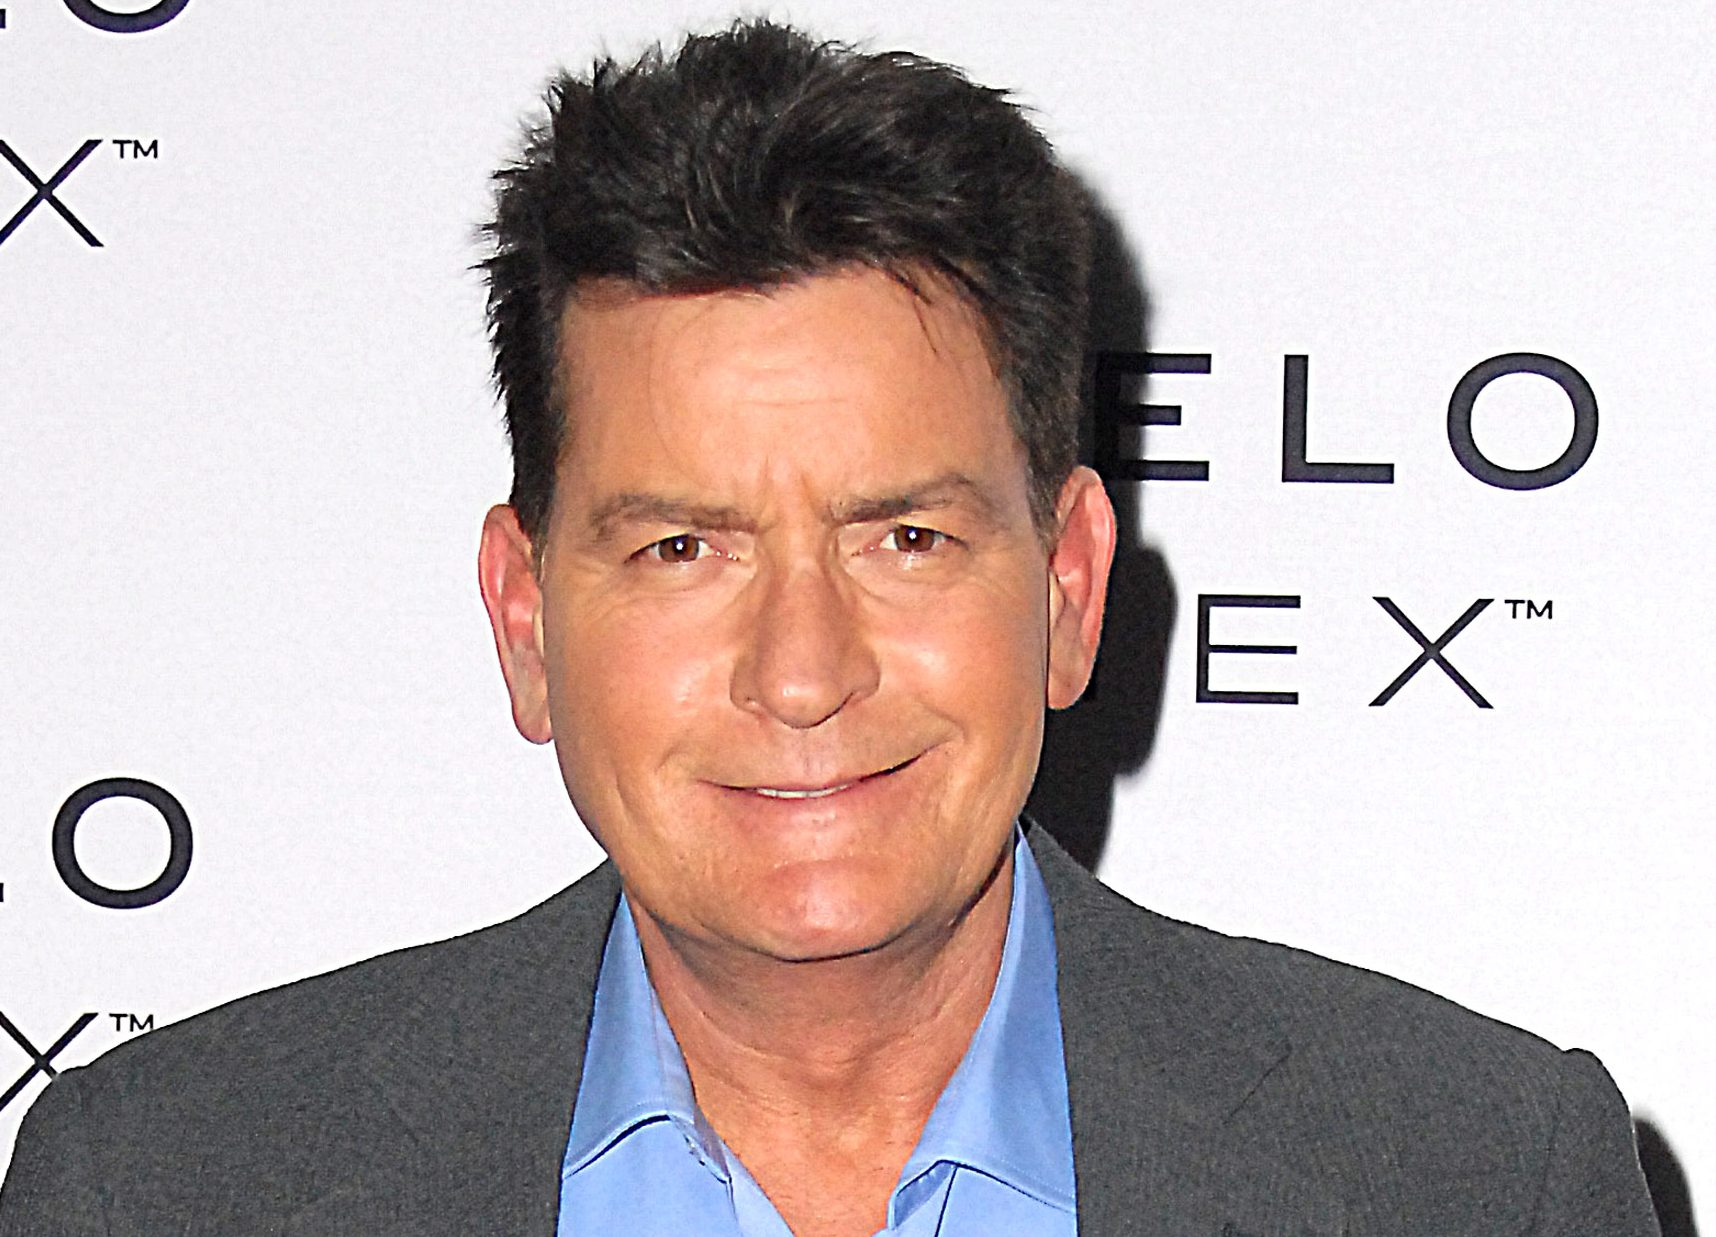 Charlie Sheen says HIV drugs left him with 'borderline dementia'